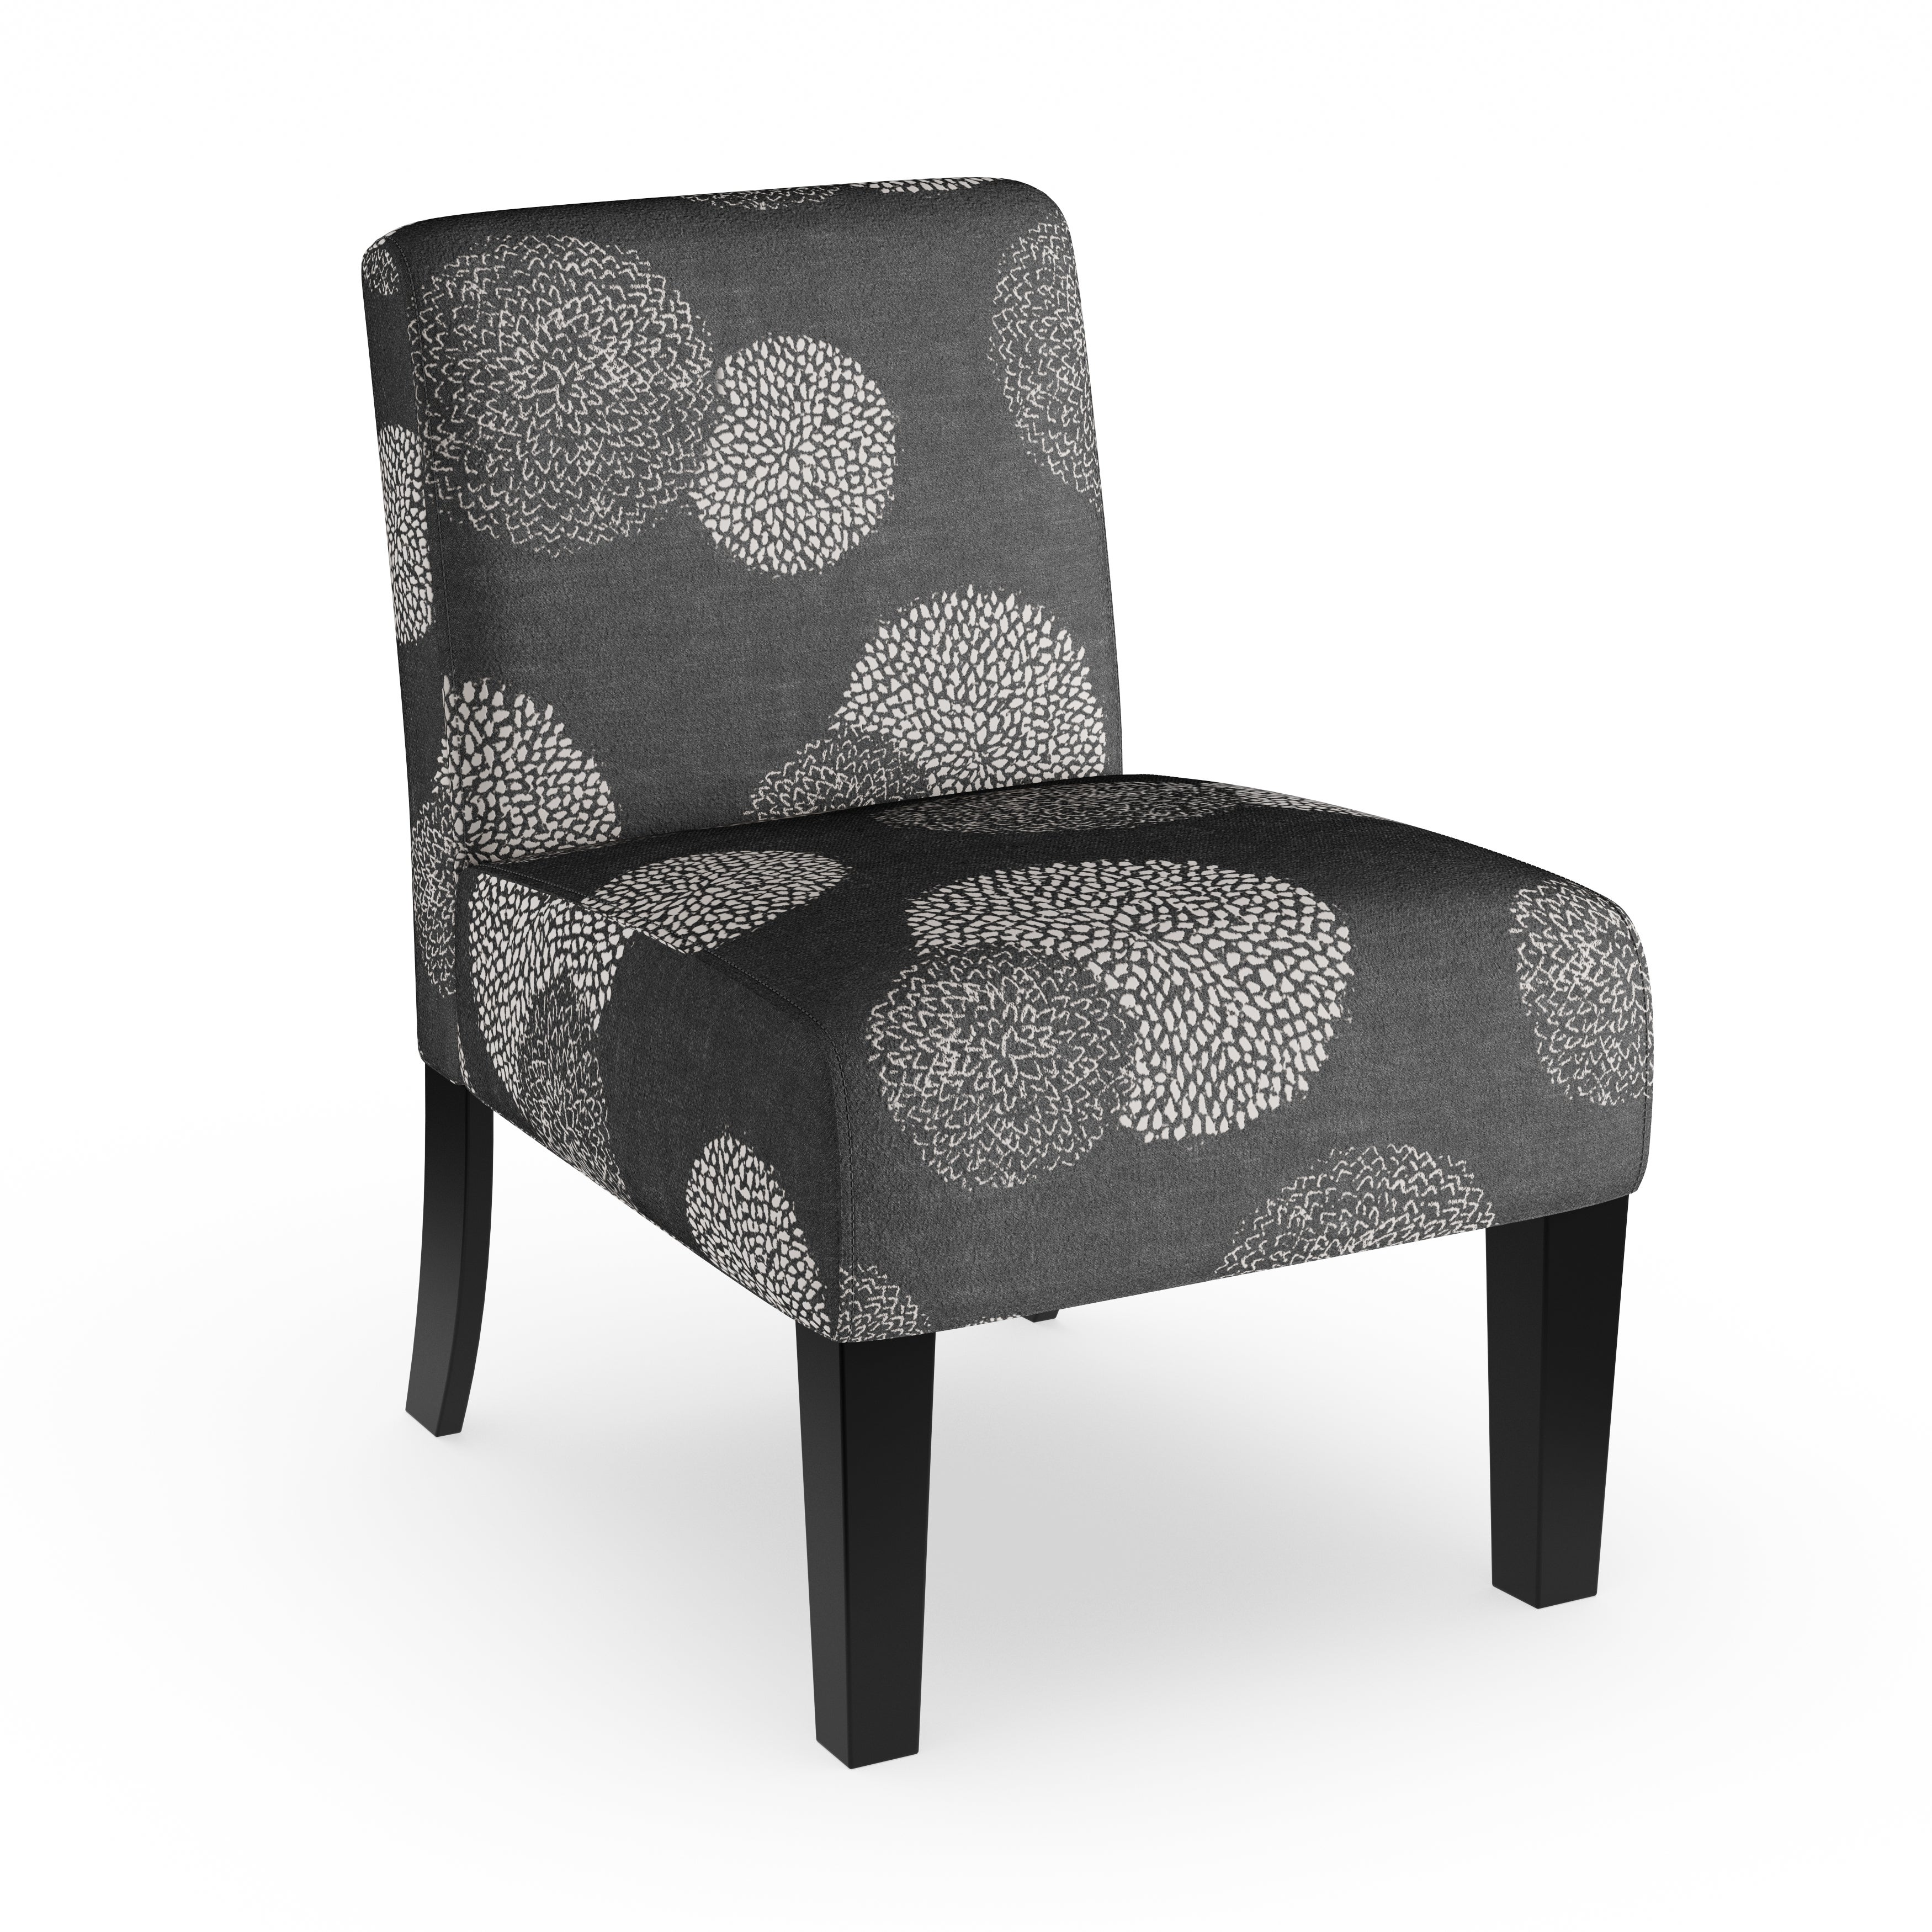 Buy Accent Chairs, Grey Living Room Chairs Online At Overstock.com | Our  Best Living Room Furniture Deals